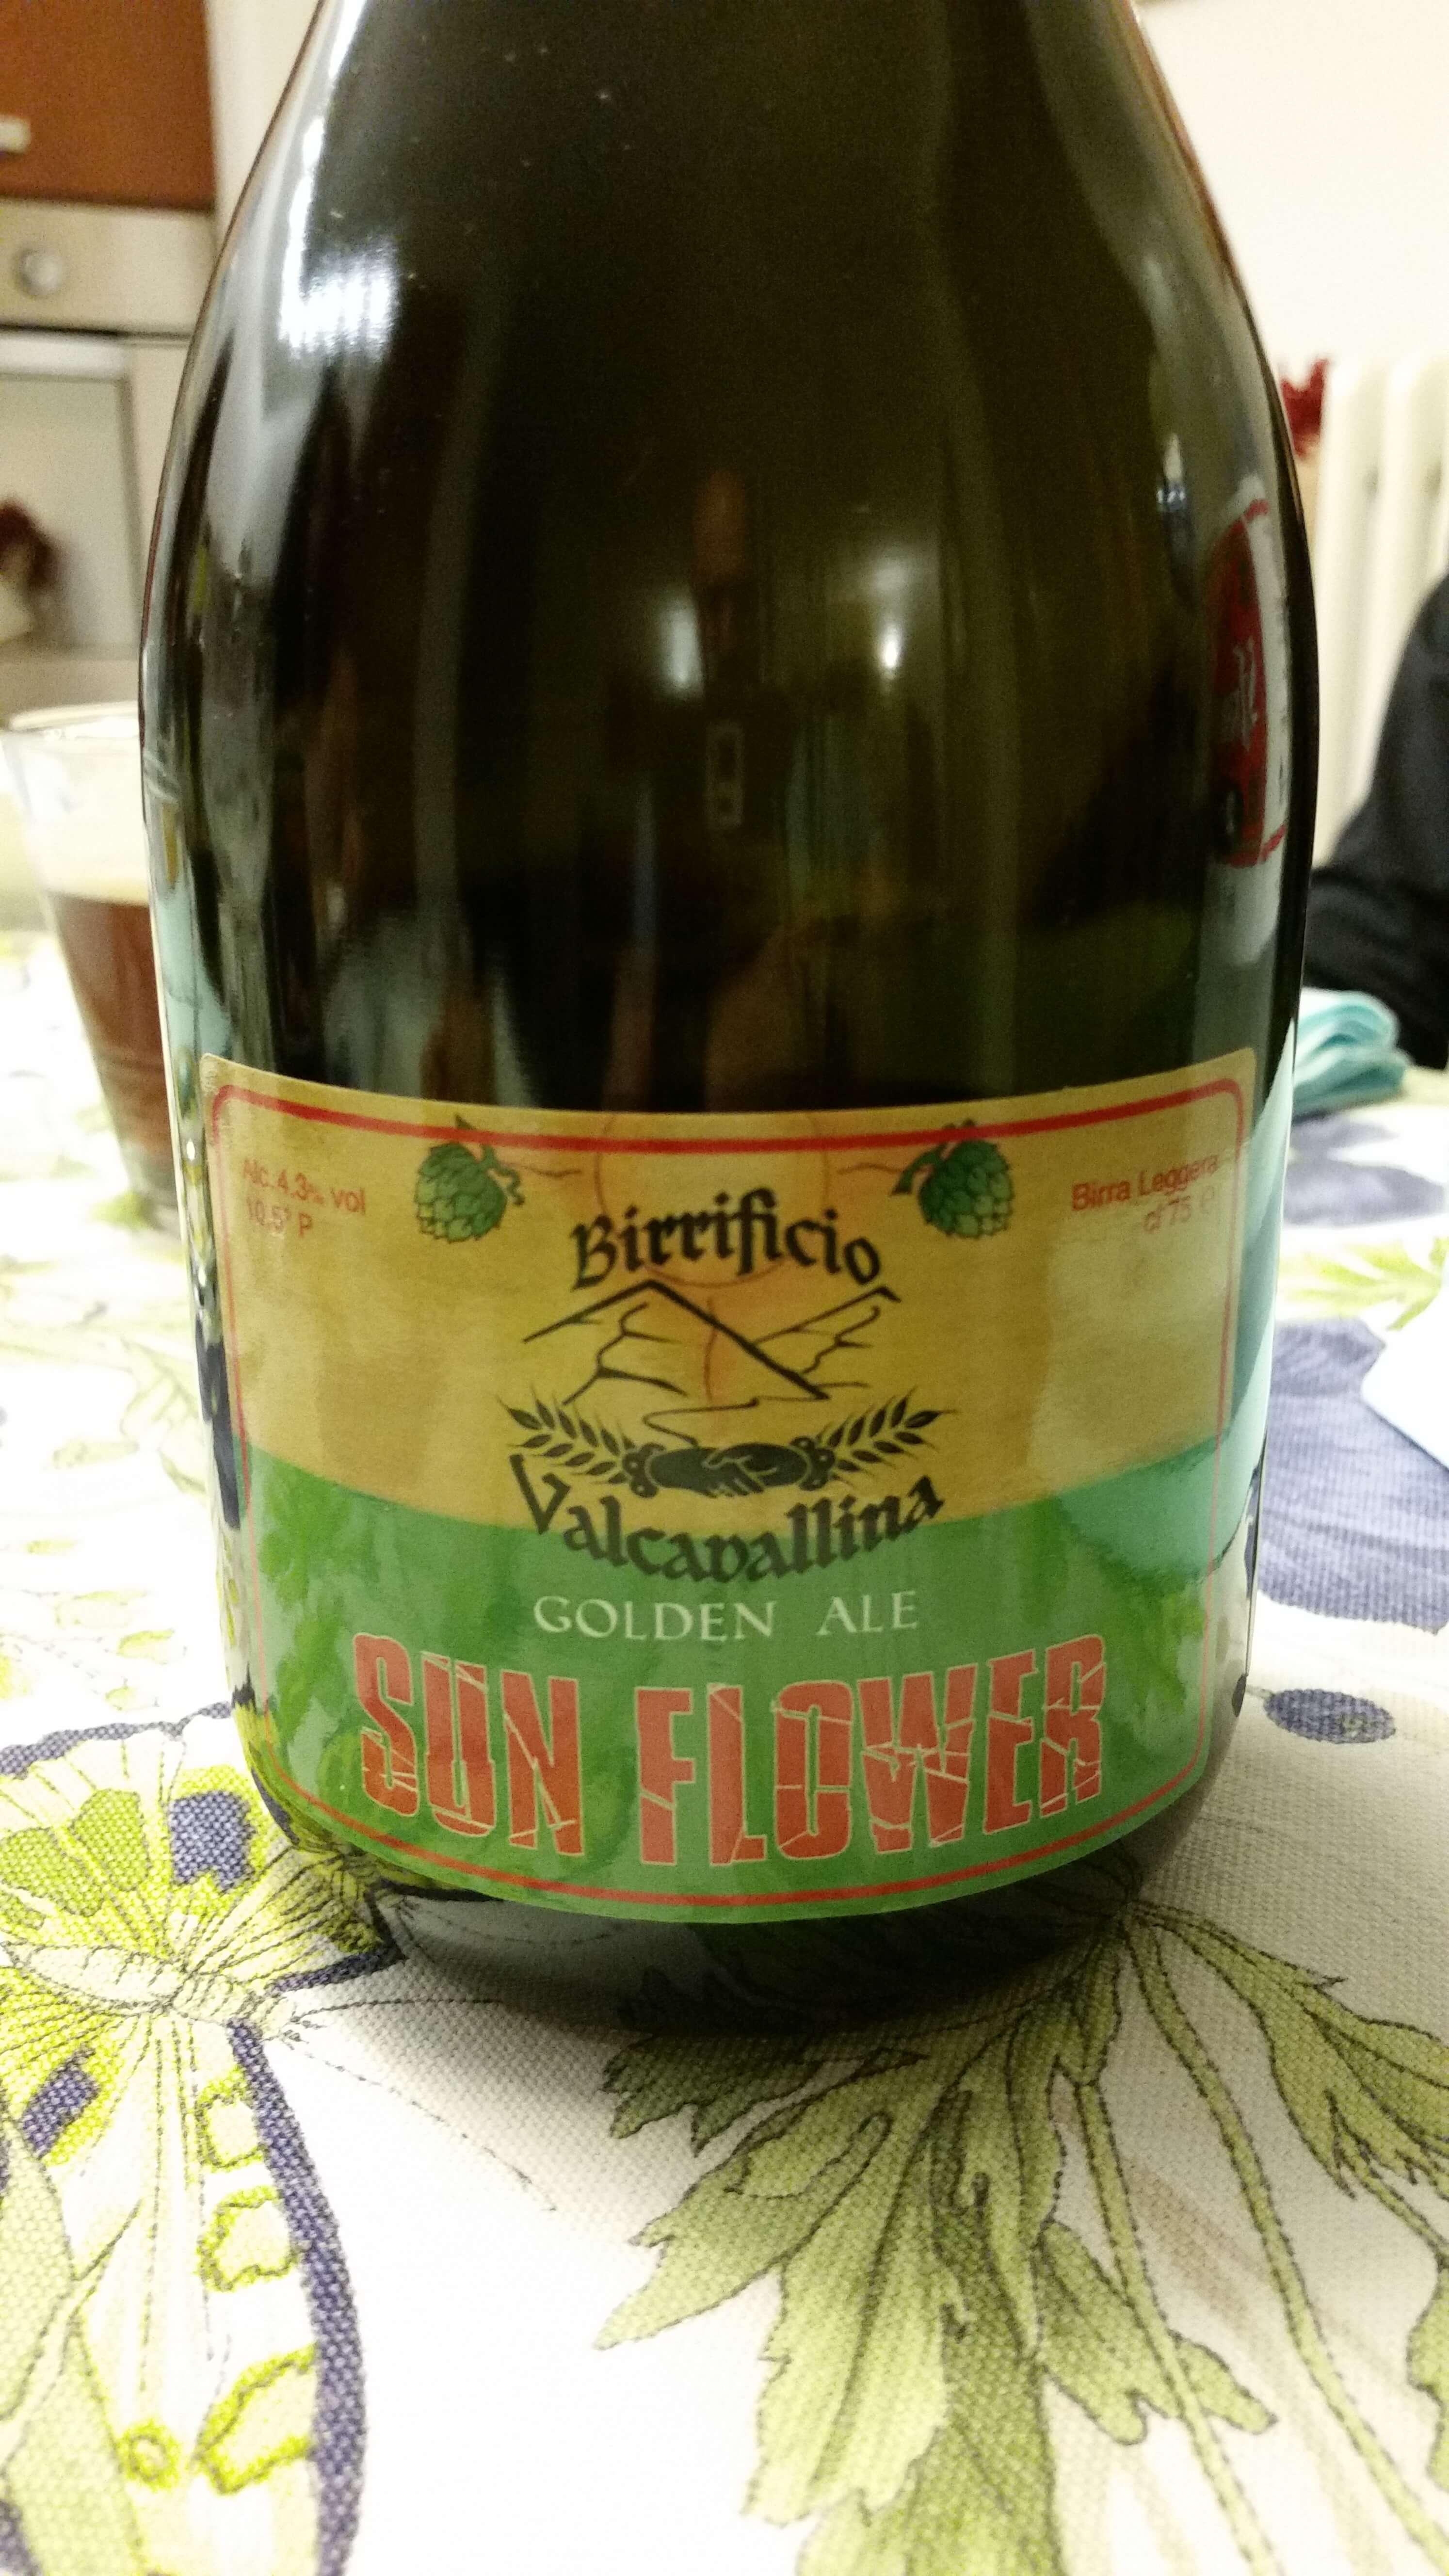 Sun Flower Golden Ale, Birrificio Valcavallina